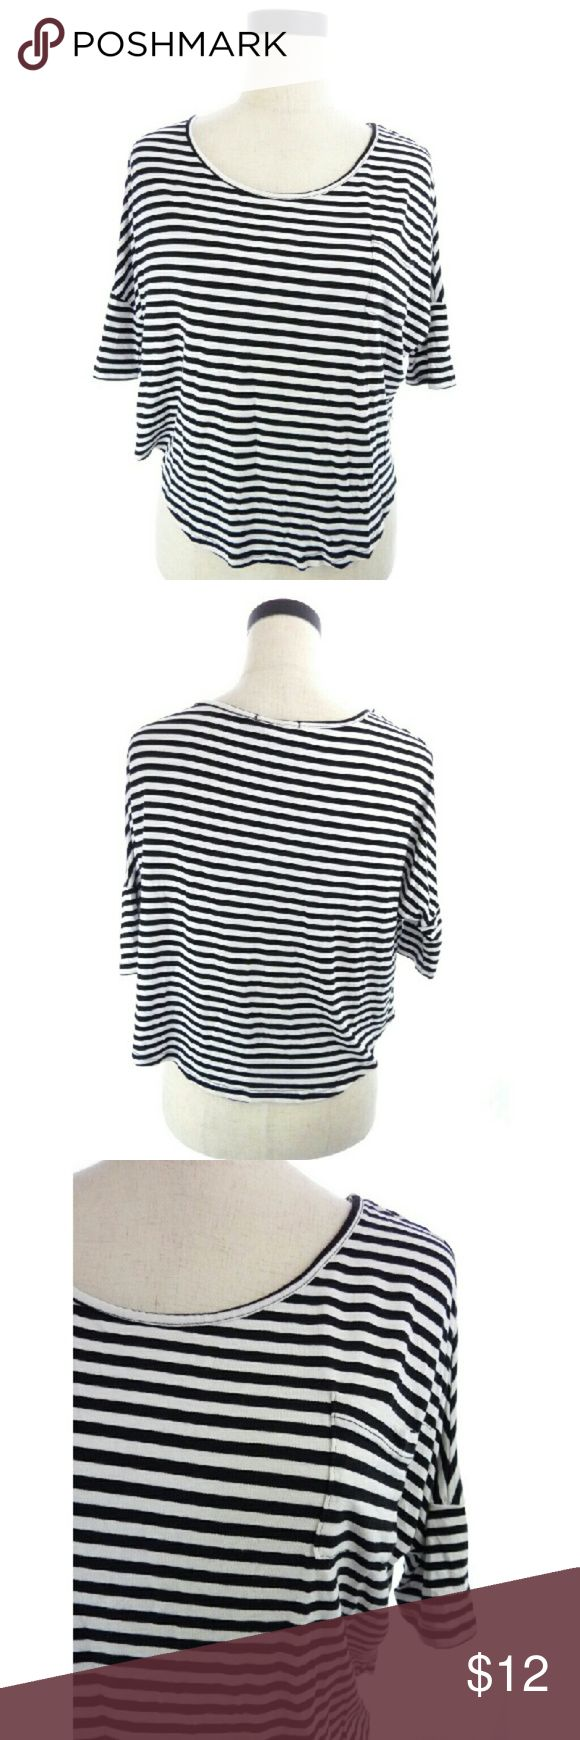 "Black and White Striped crop top Black and white crop top with single breast pocket. Batwing like short sleeves. Armpit to armpit is 16"" across when flat. Shoulder to hem is 18"".  wt1752 Love Culture Tops Tees - Short Sleeve"